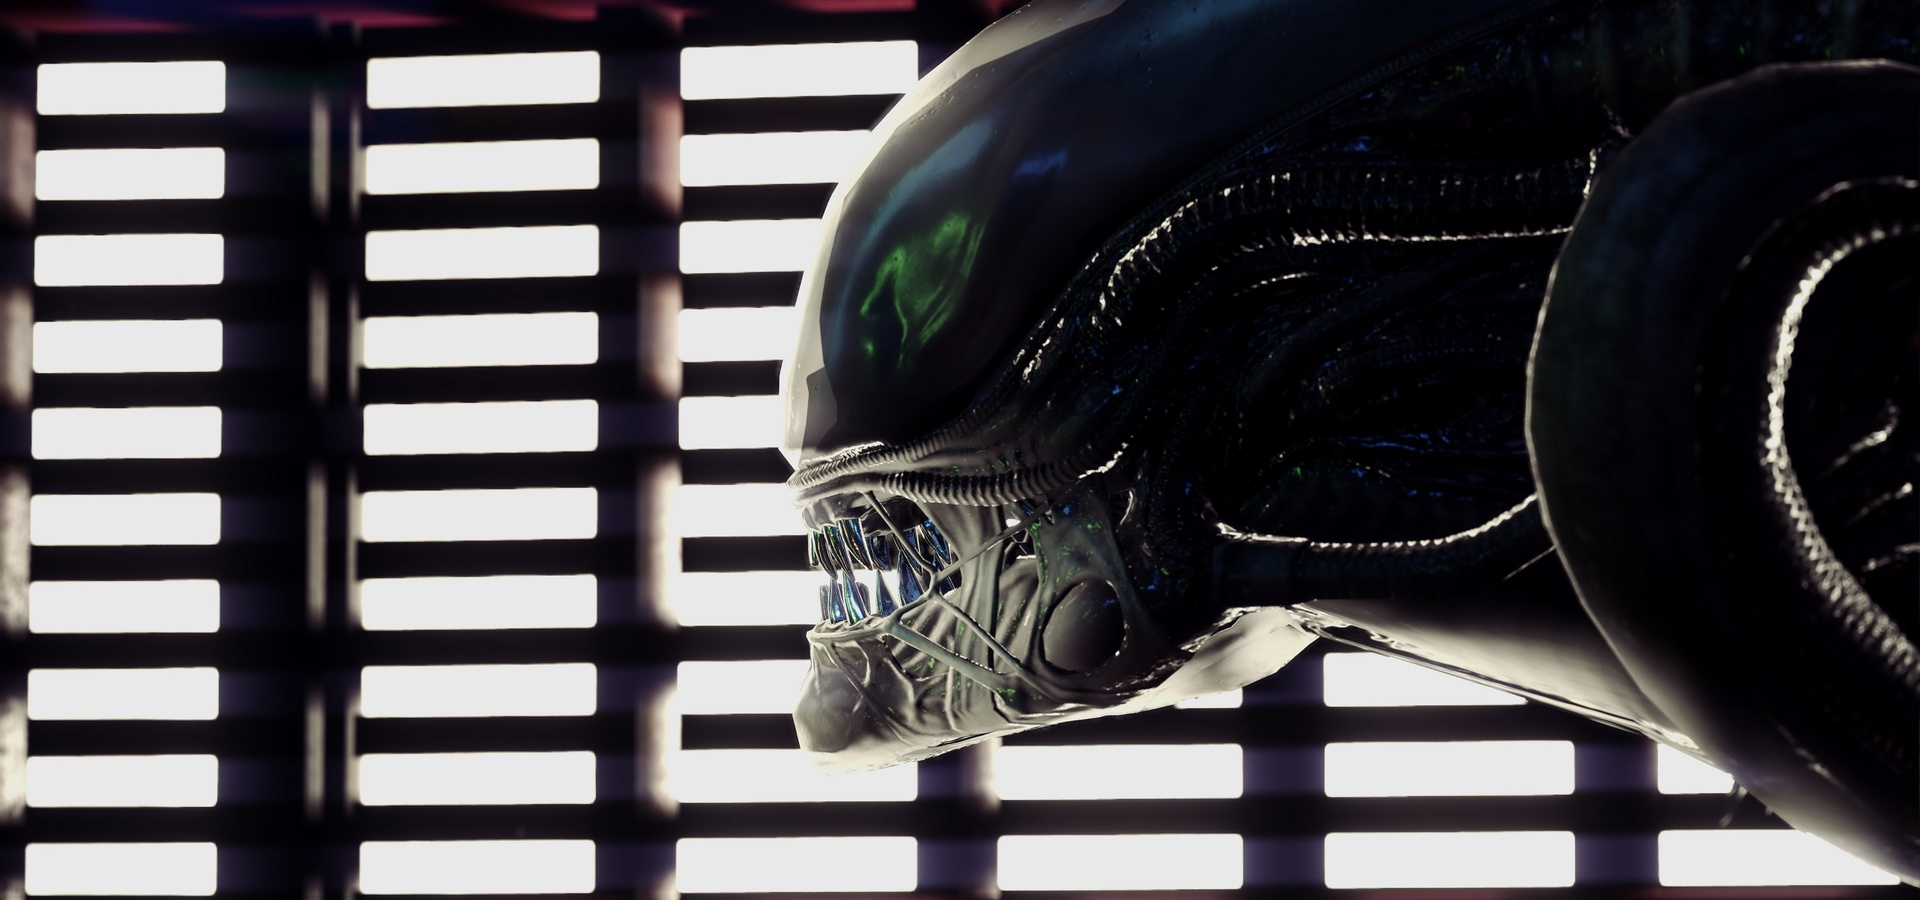 Alien Isolation VR mod adds motion controller support, making it one of the best VR games to date